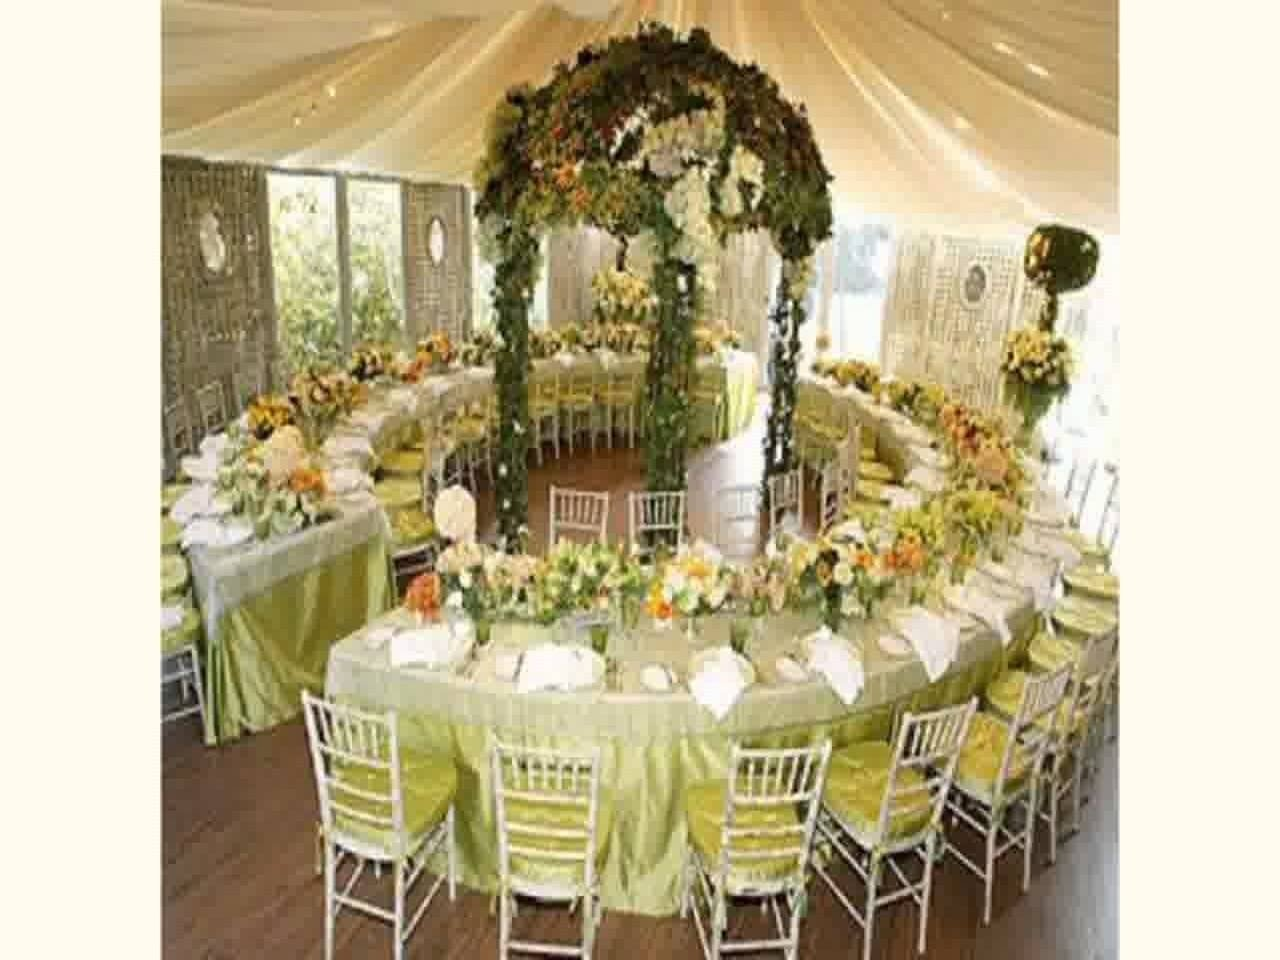 10 Lovable Reception Ideas For Small Wedding new wedding venue decoration youtube 1 2020